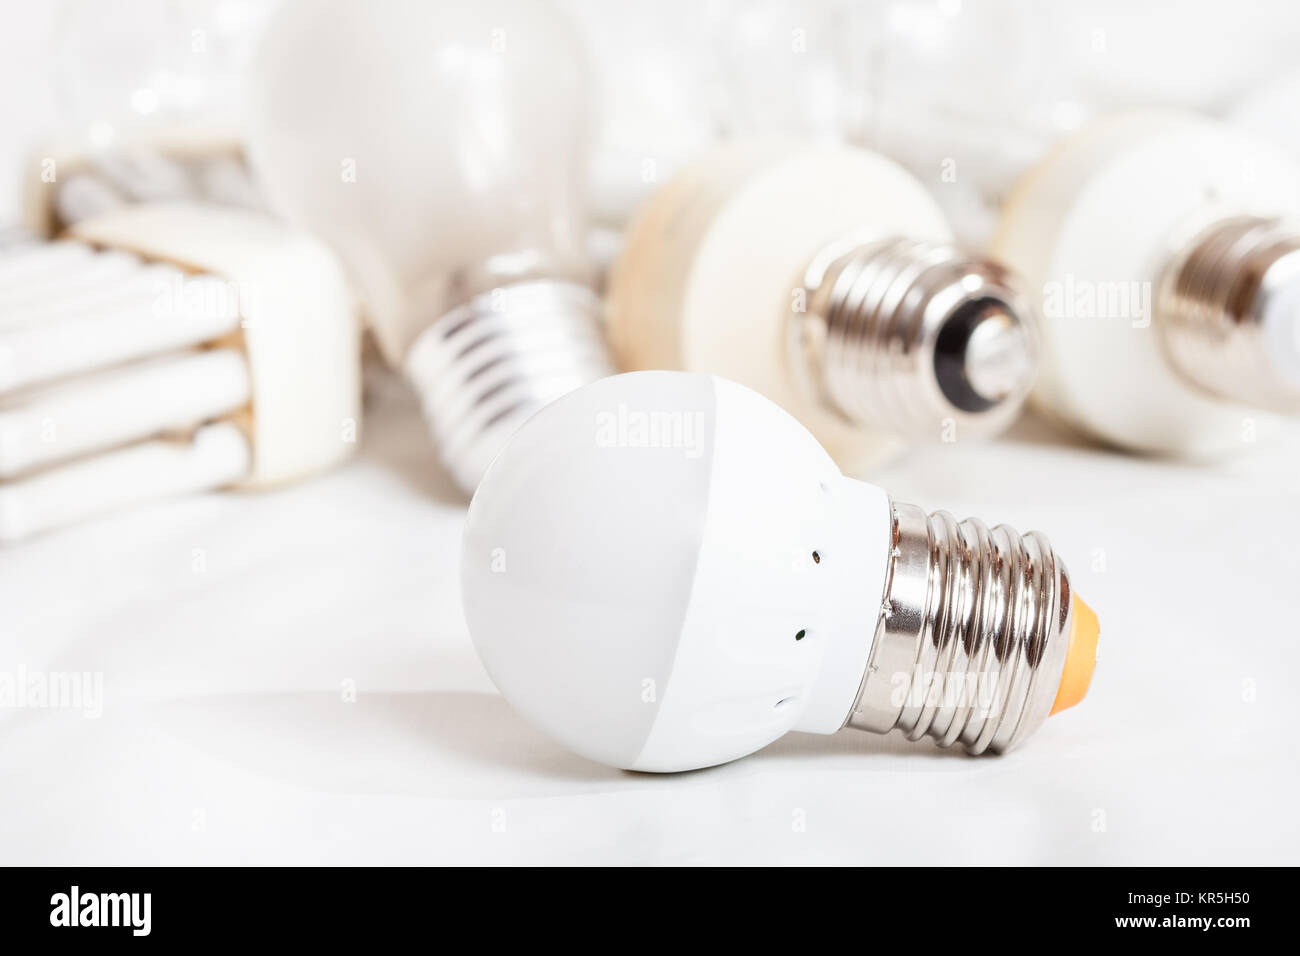 Led Verlichting 50 Lampjes Energy Saving Led Lamp And Several Old Light Bulbs Stock Photo